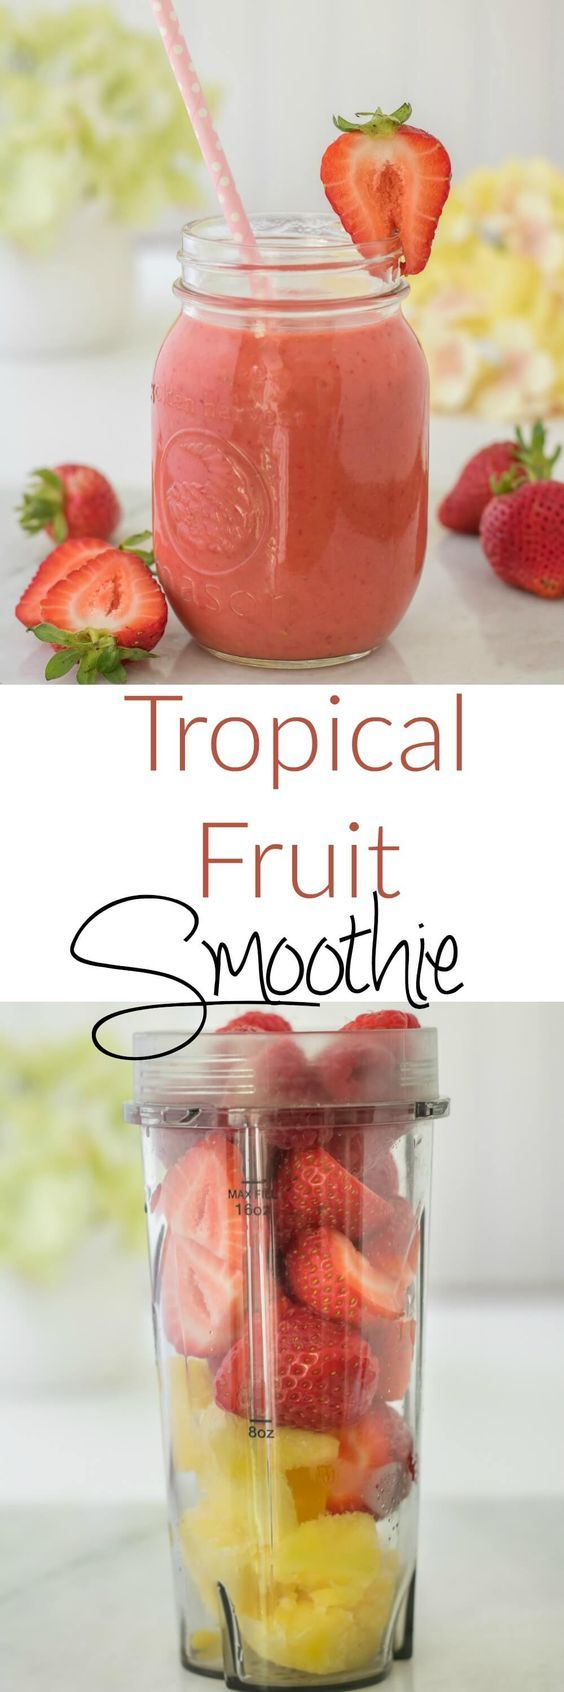 Tropical Fruit Smoothie - A Guilt Free Treat